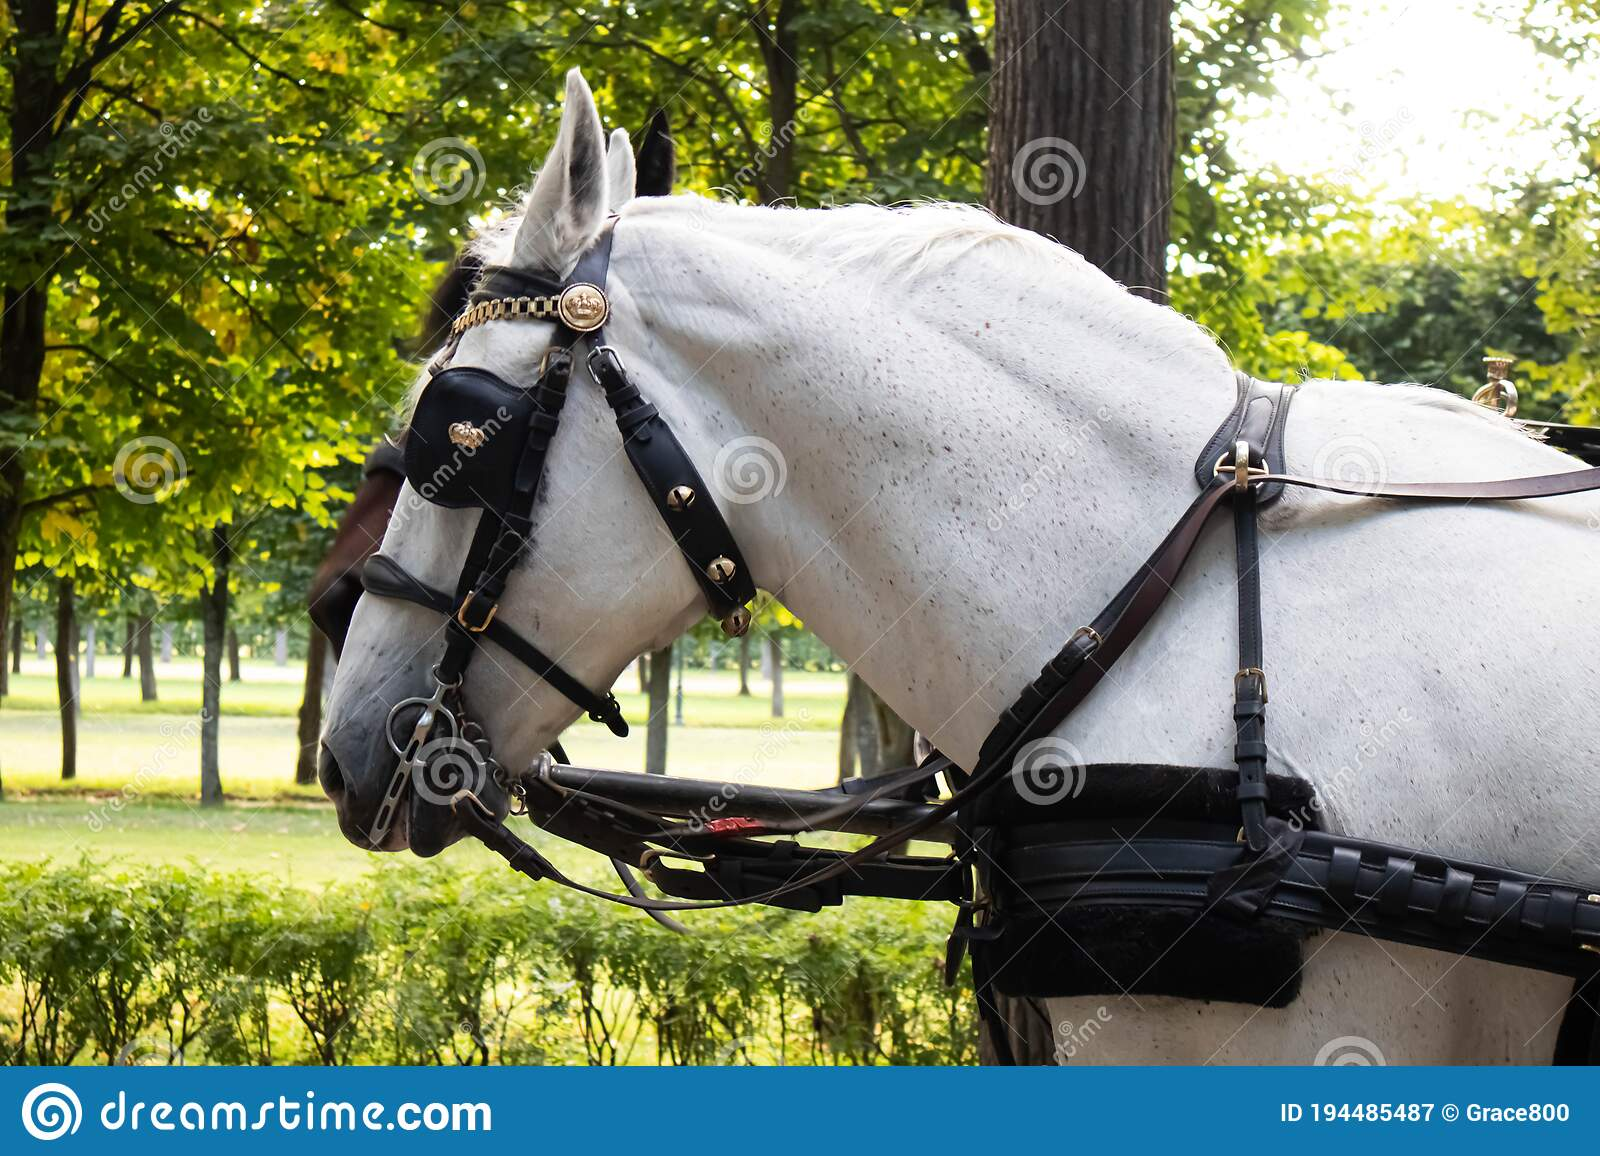 2 786 Equine Holiday Photos Free Royalty Free Stock Photos From Dreamstime